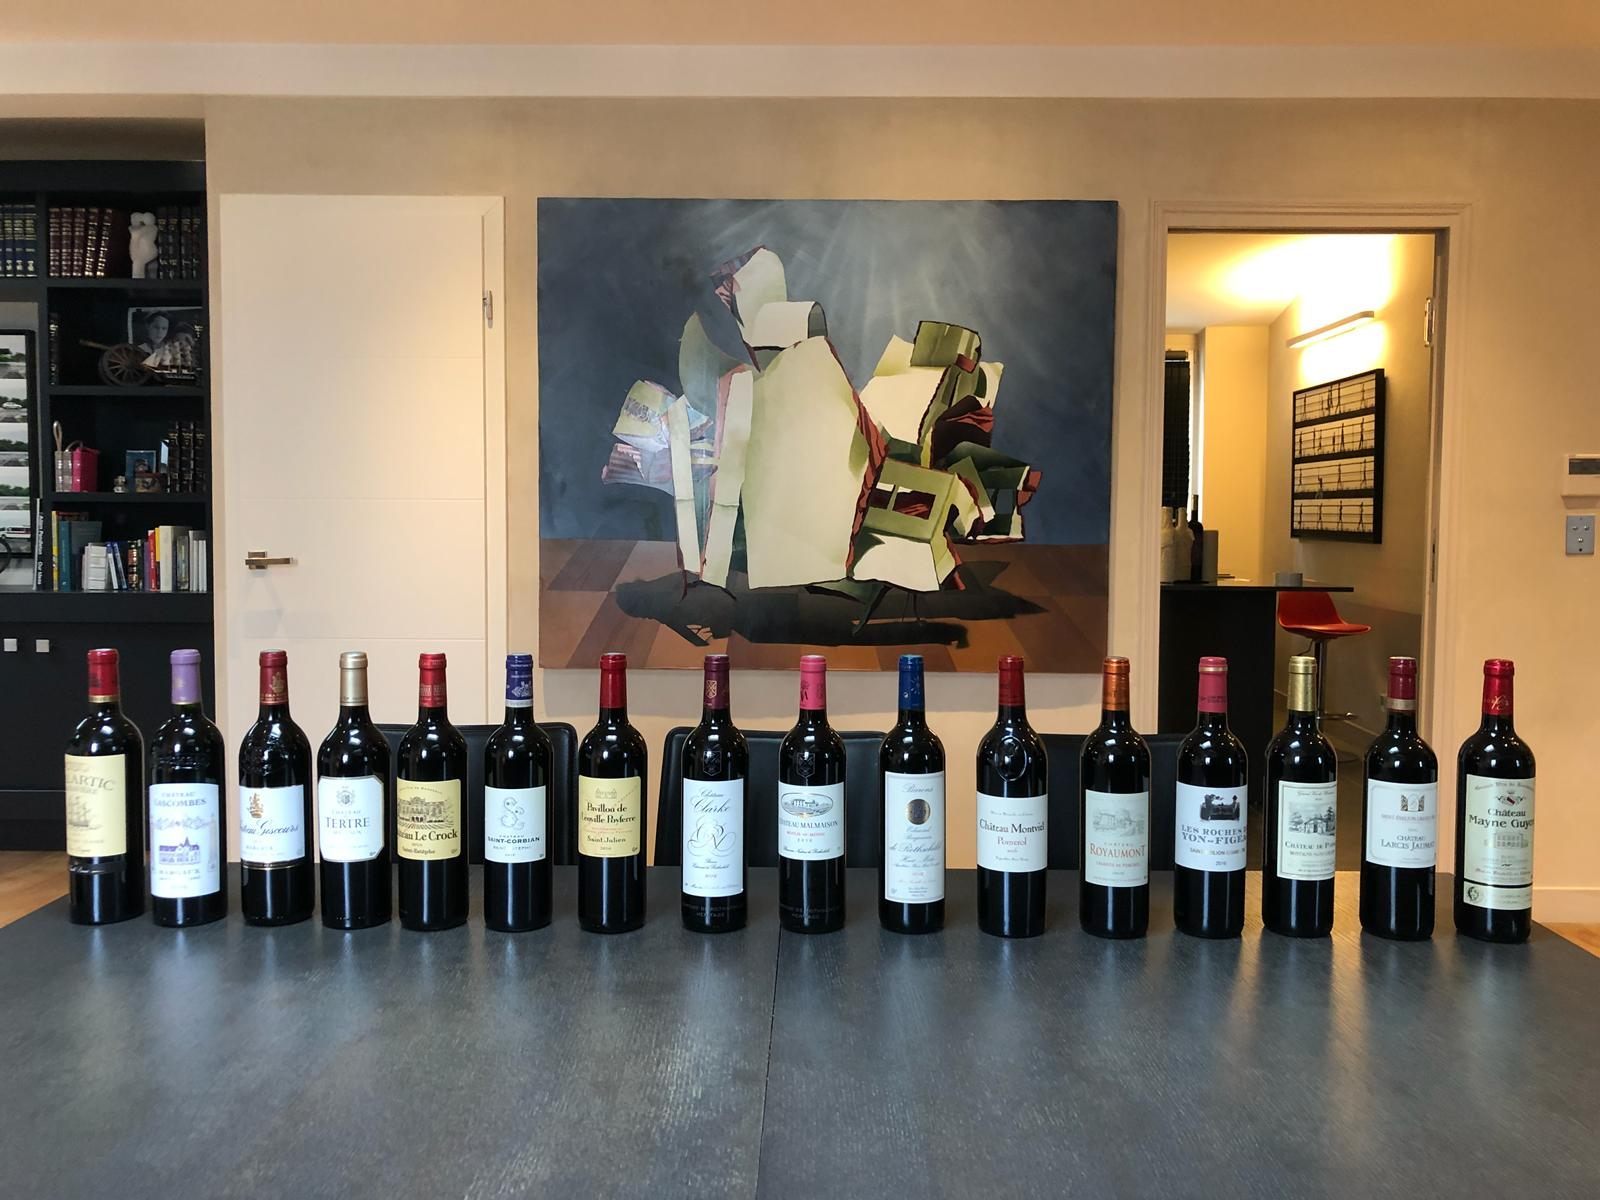 All 16 of the 2016 and 2017 Royal Wines of Bordeuax